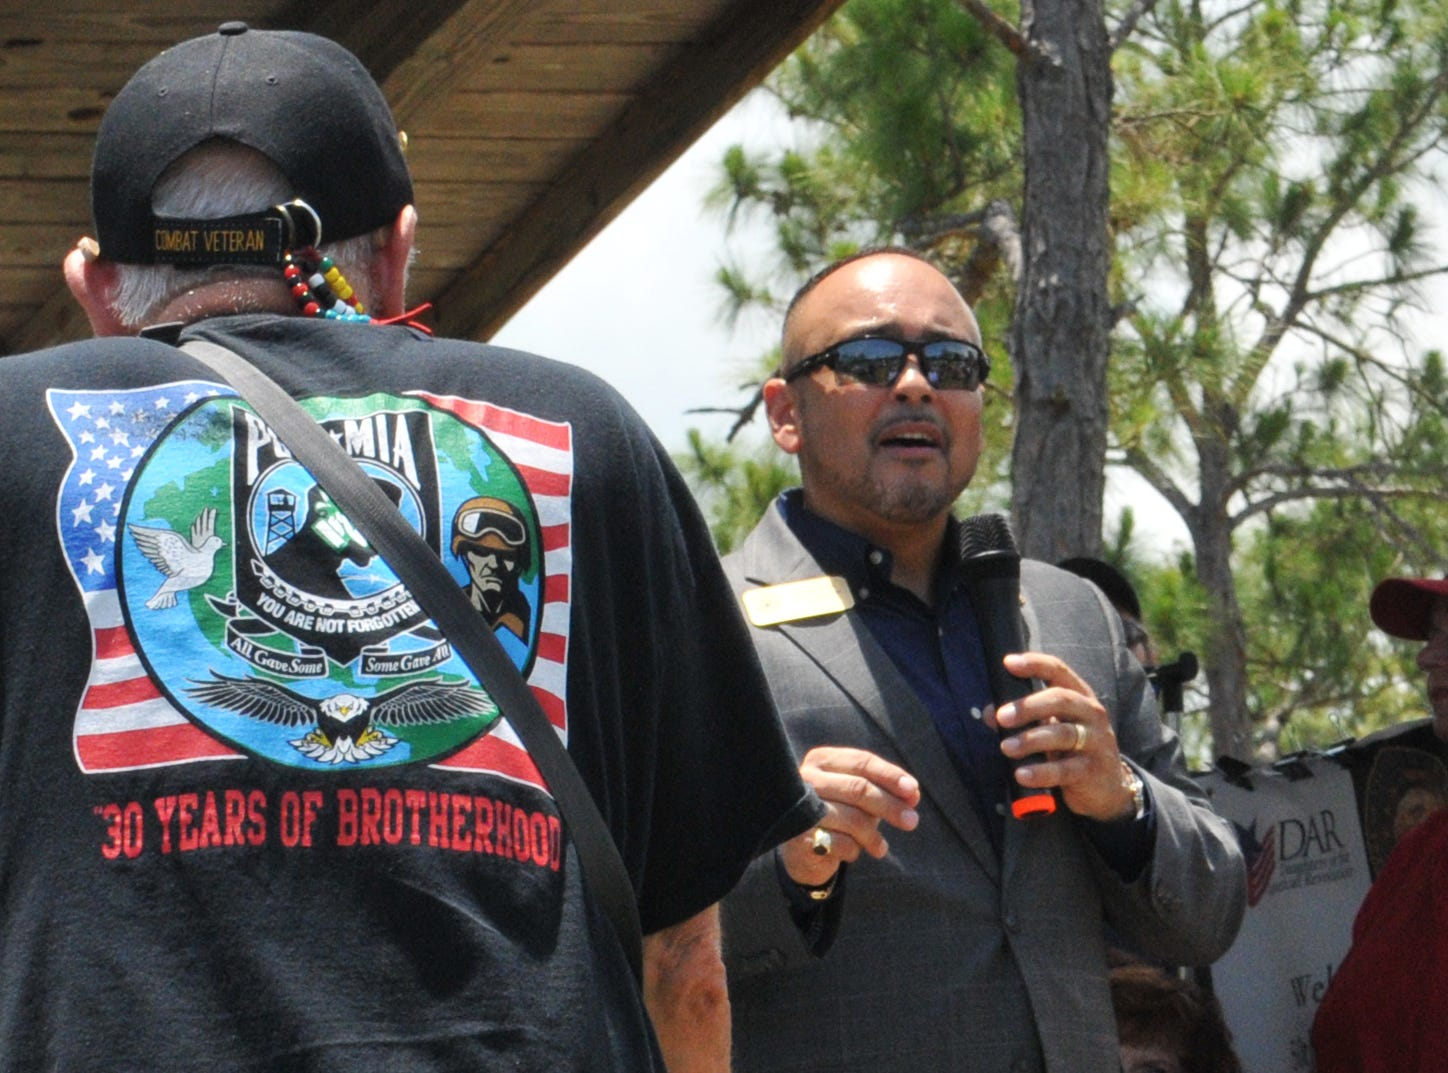 Rob Medina, of Congressman Bill Posey's office. Welcome Home Vietnam & Vietnam Era Veterans, a 1:00pm Saturday event held at the Vietnam Traveling Memorial Wall at Wickham Park in Melbourne. This is part of the Vietnam and All Veterans Reunion that continues until Sunday, May 12.